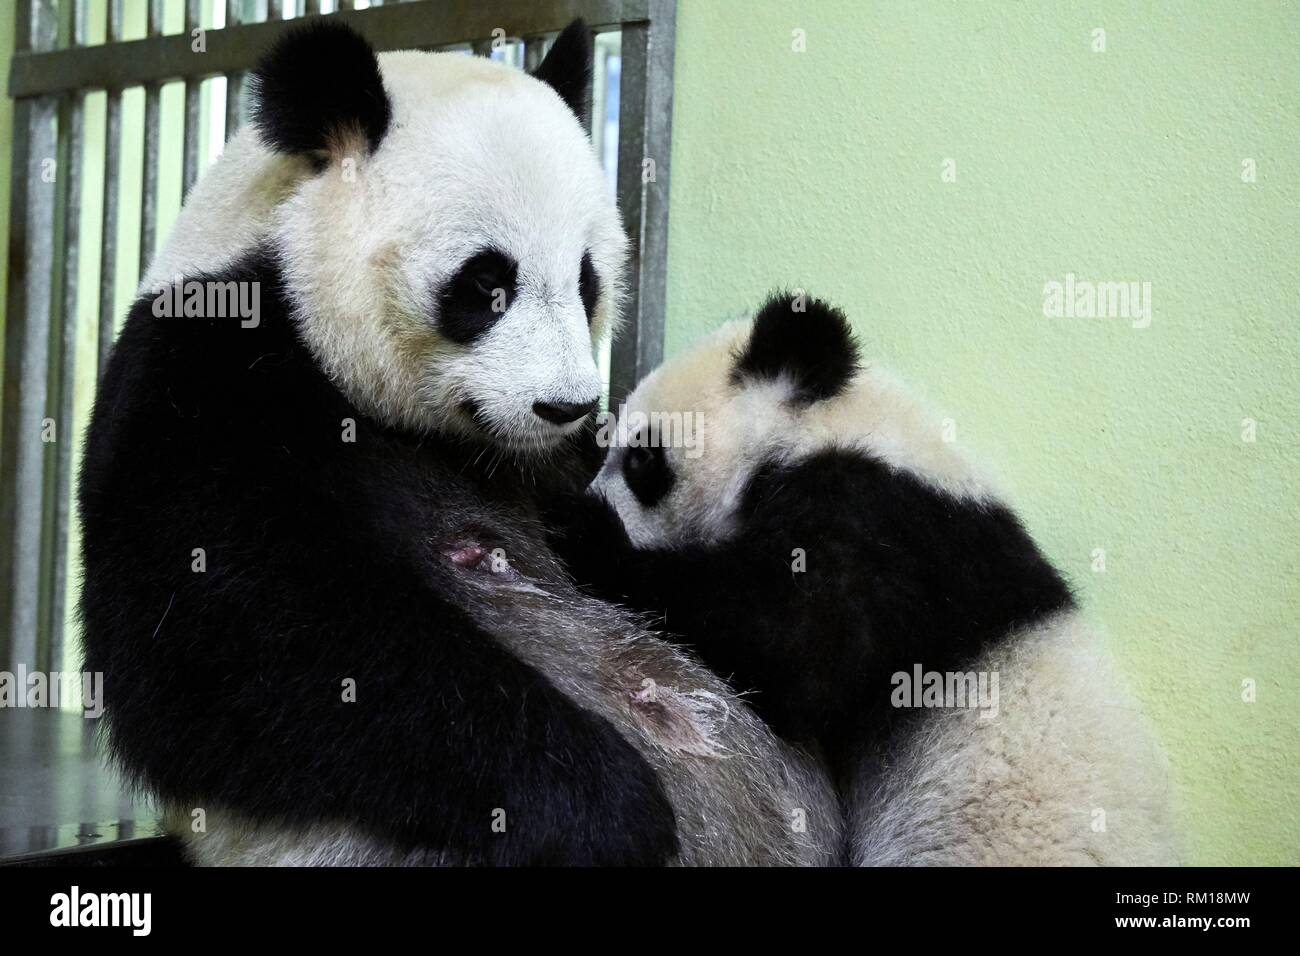 Giant panda cub Yuan Meng suckling its mother Huan Huan (Ailuropoda melanoleuca). Yuan Meng, first giant panda ever born in France, is now10 months - Stock Image